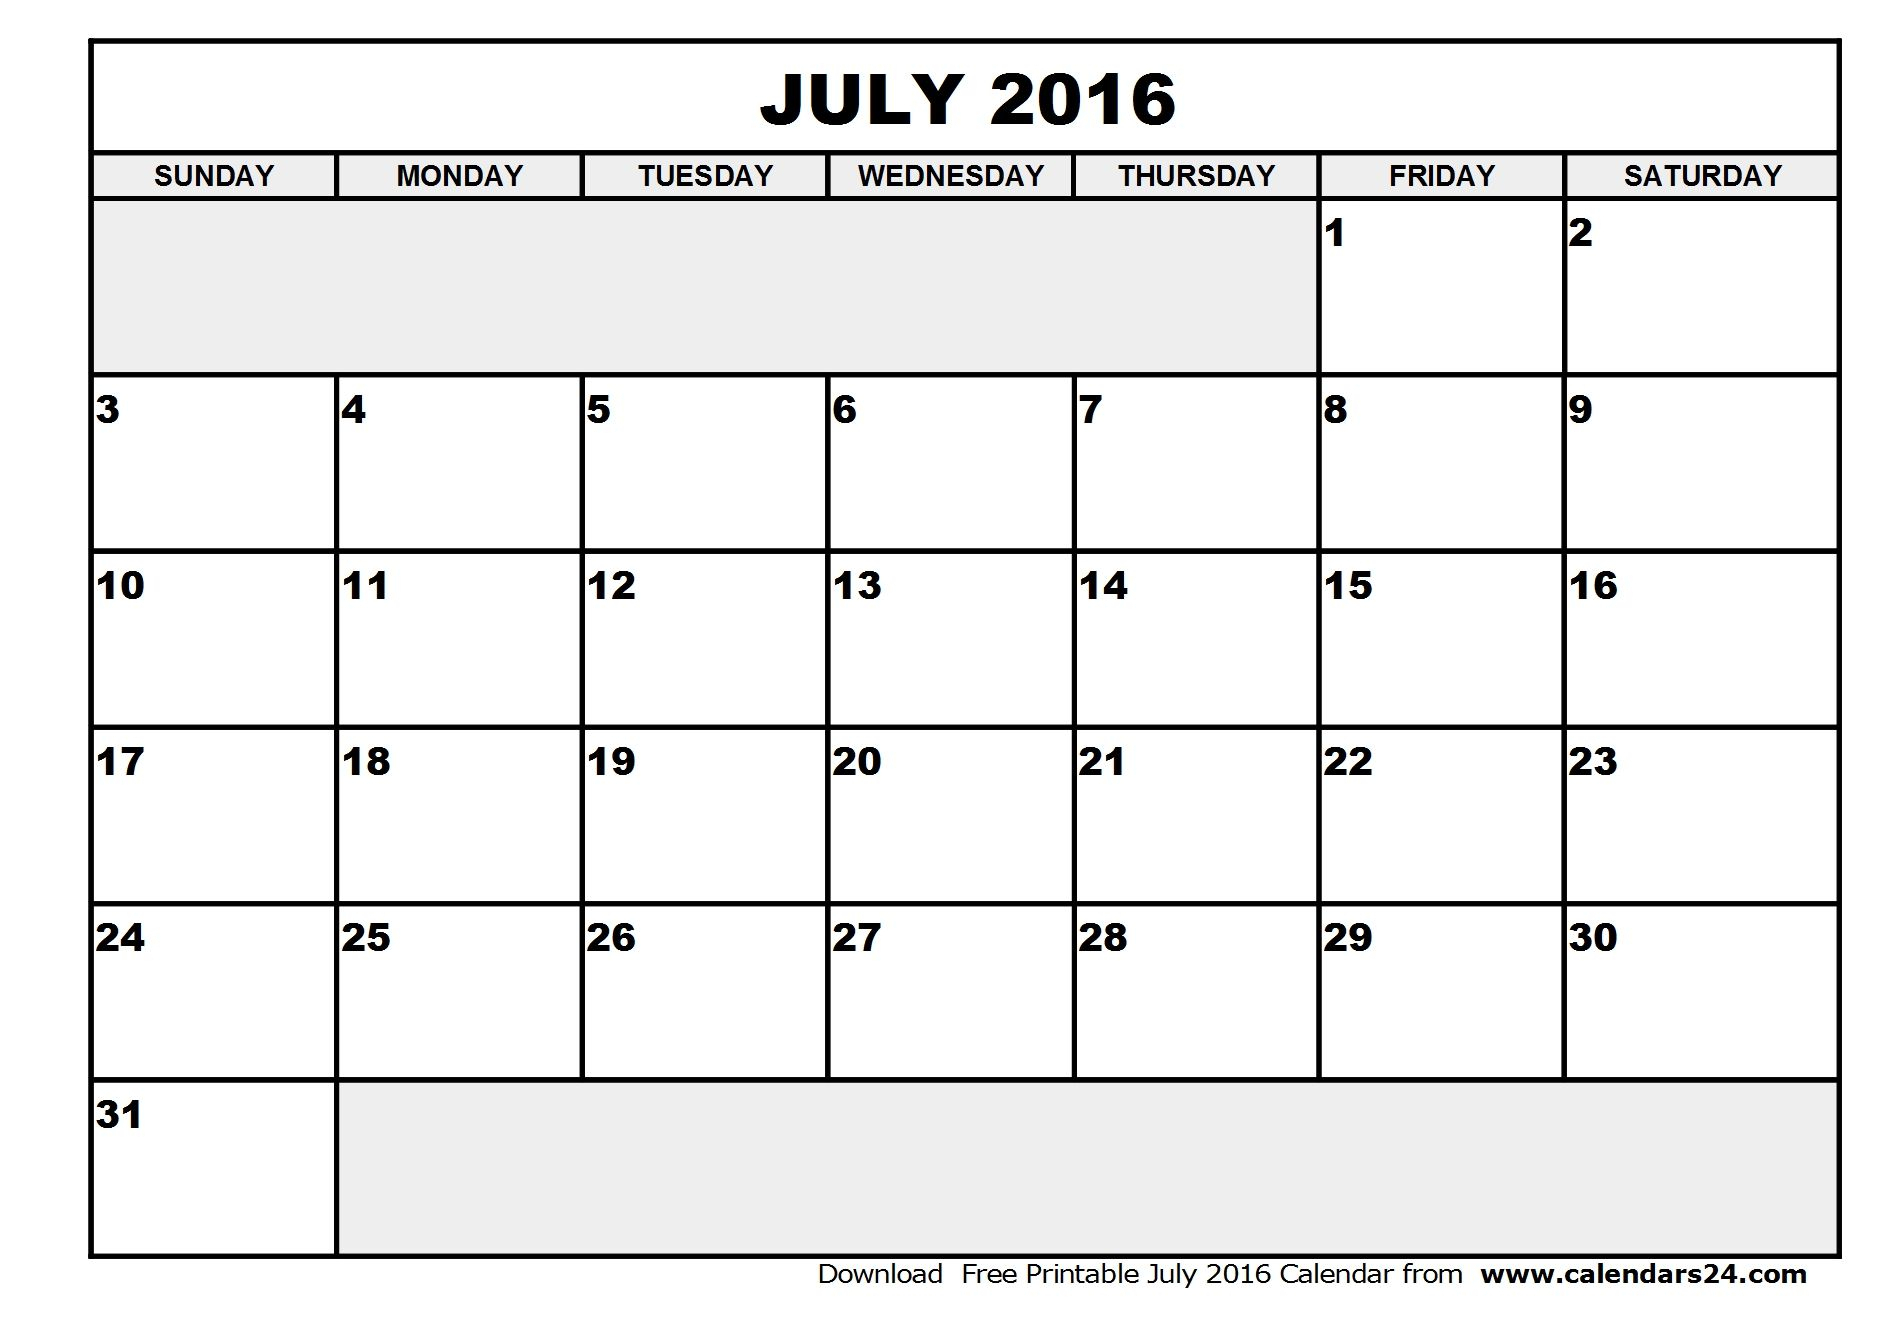 July August 2016 Calendar | July Calendar, Free Printable pertaining to July August 2016 Calendar